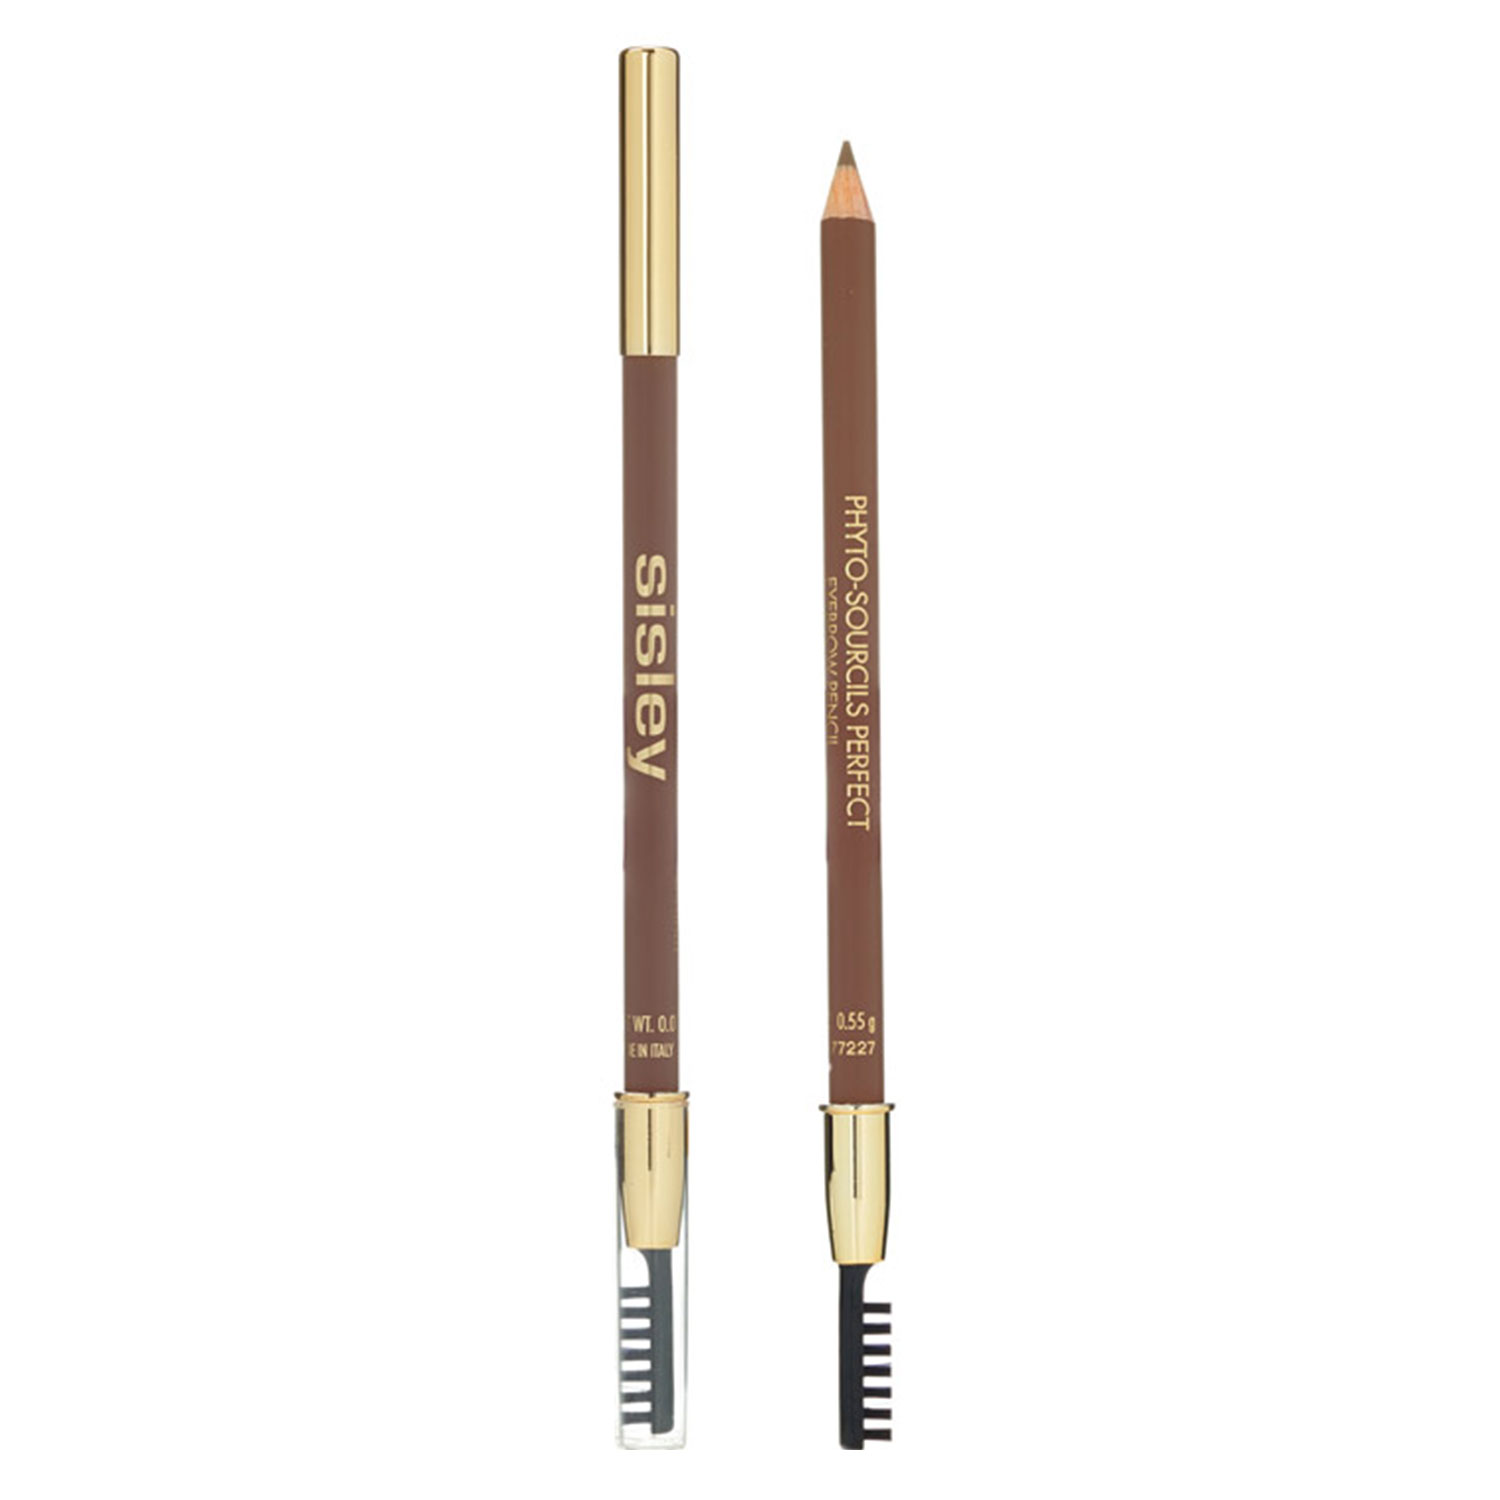 Phyto Sourcils - Perfect Cappuccino 4